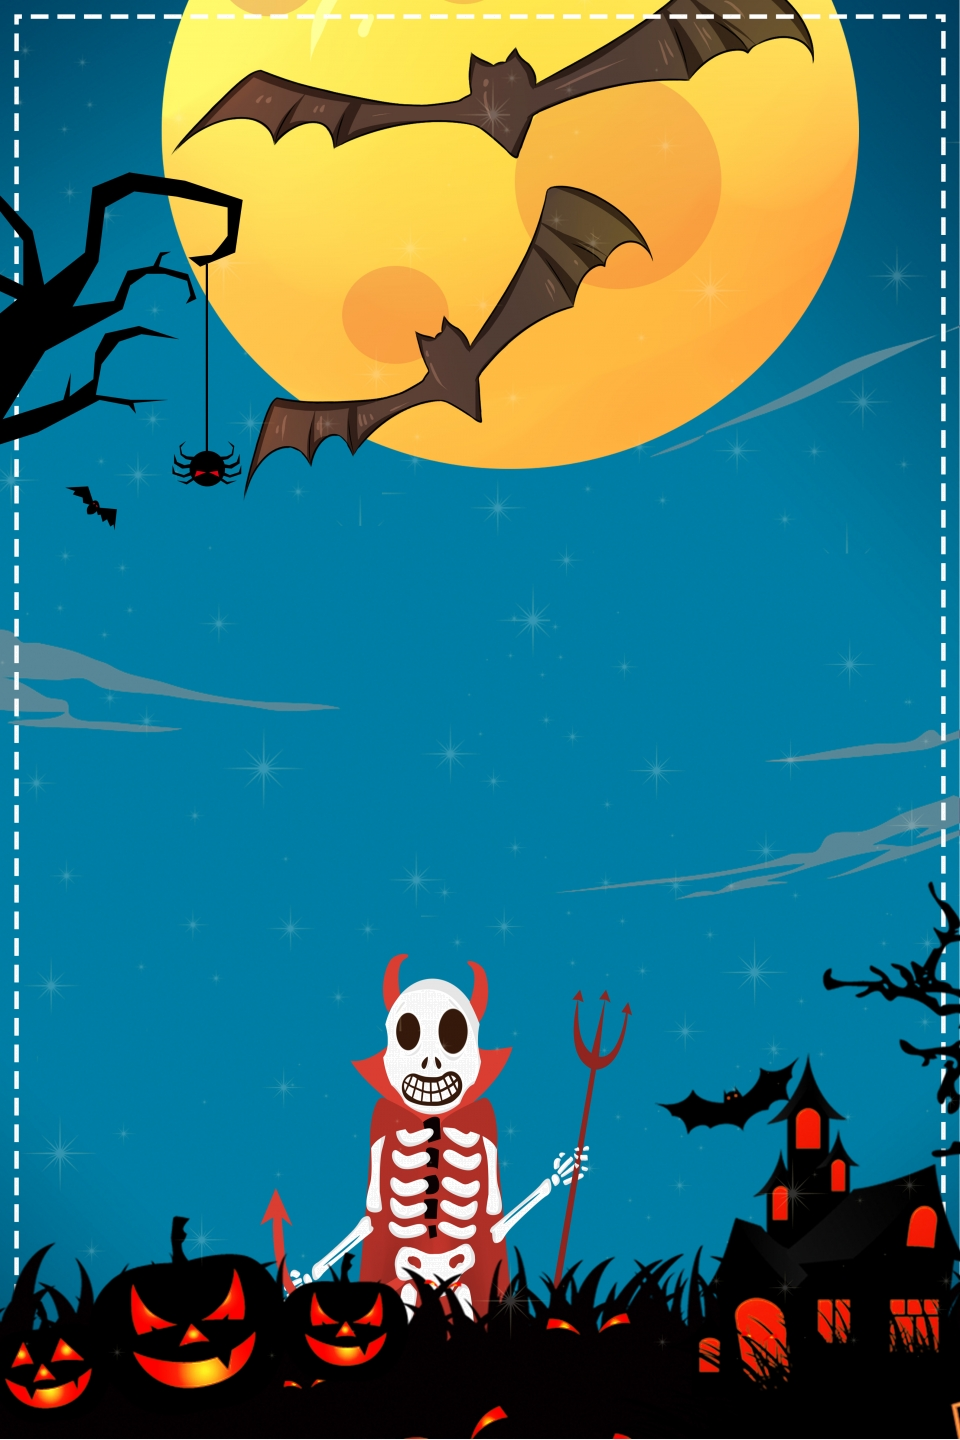 Halloween Poster Background Free.Halloween Poster Background Material Halloween Hotel